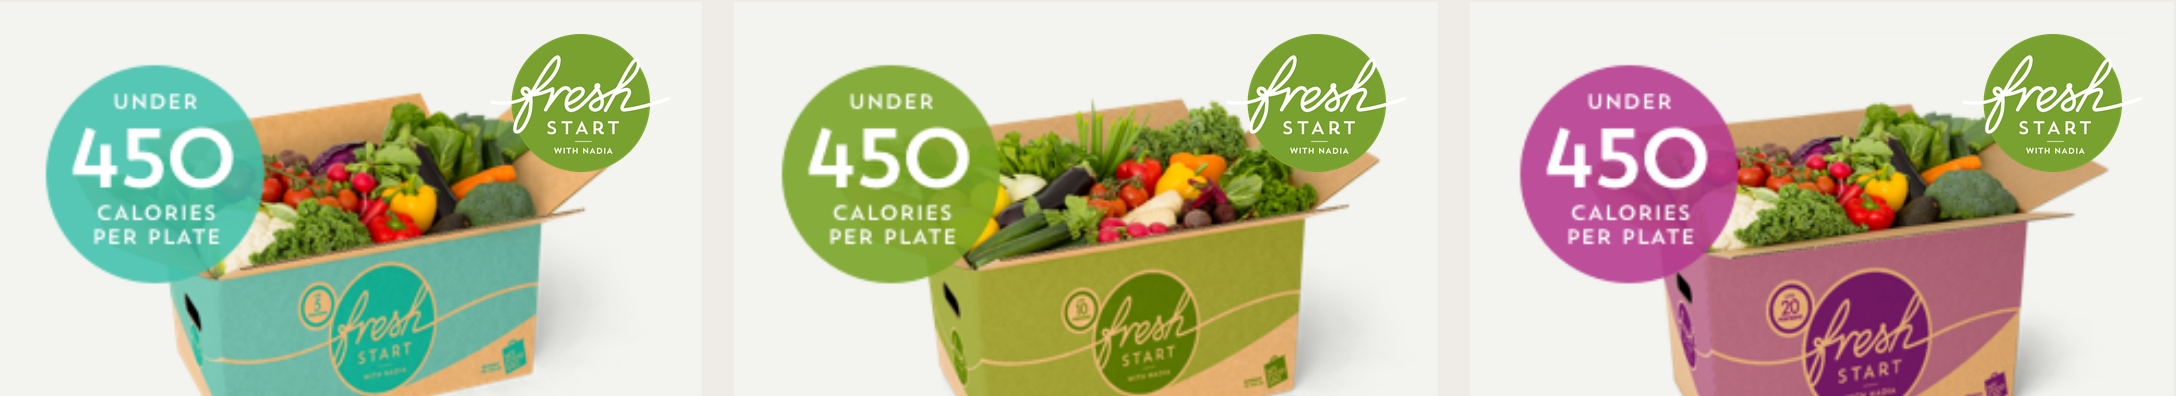 The Fresh Start Bag from myfoodbag.co.nz